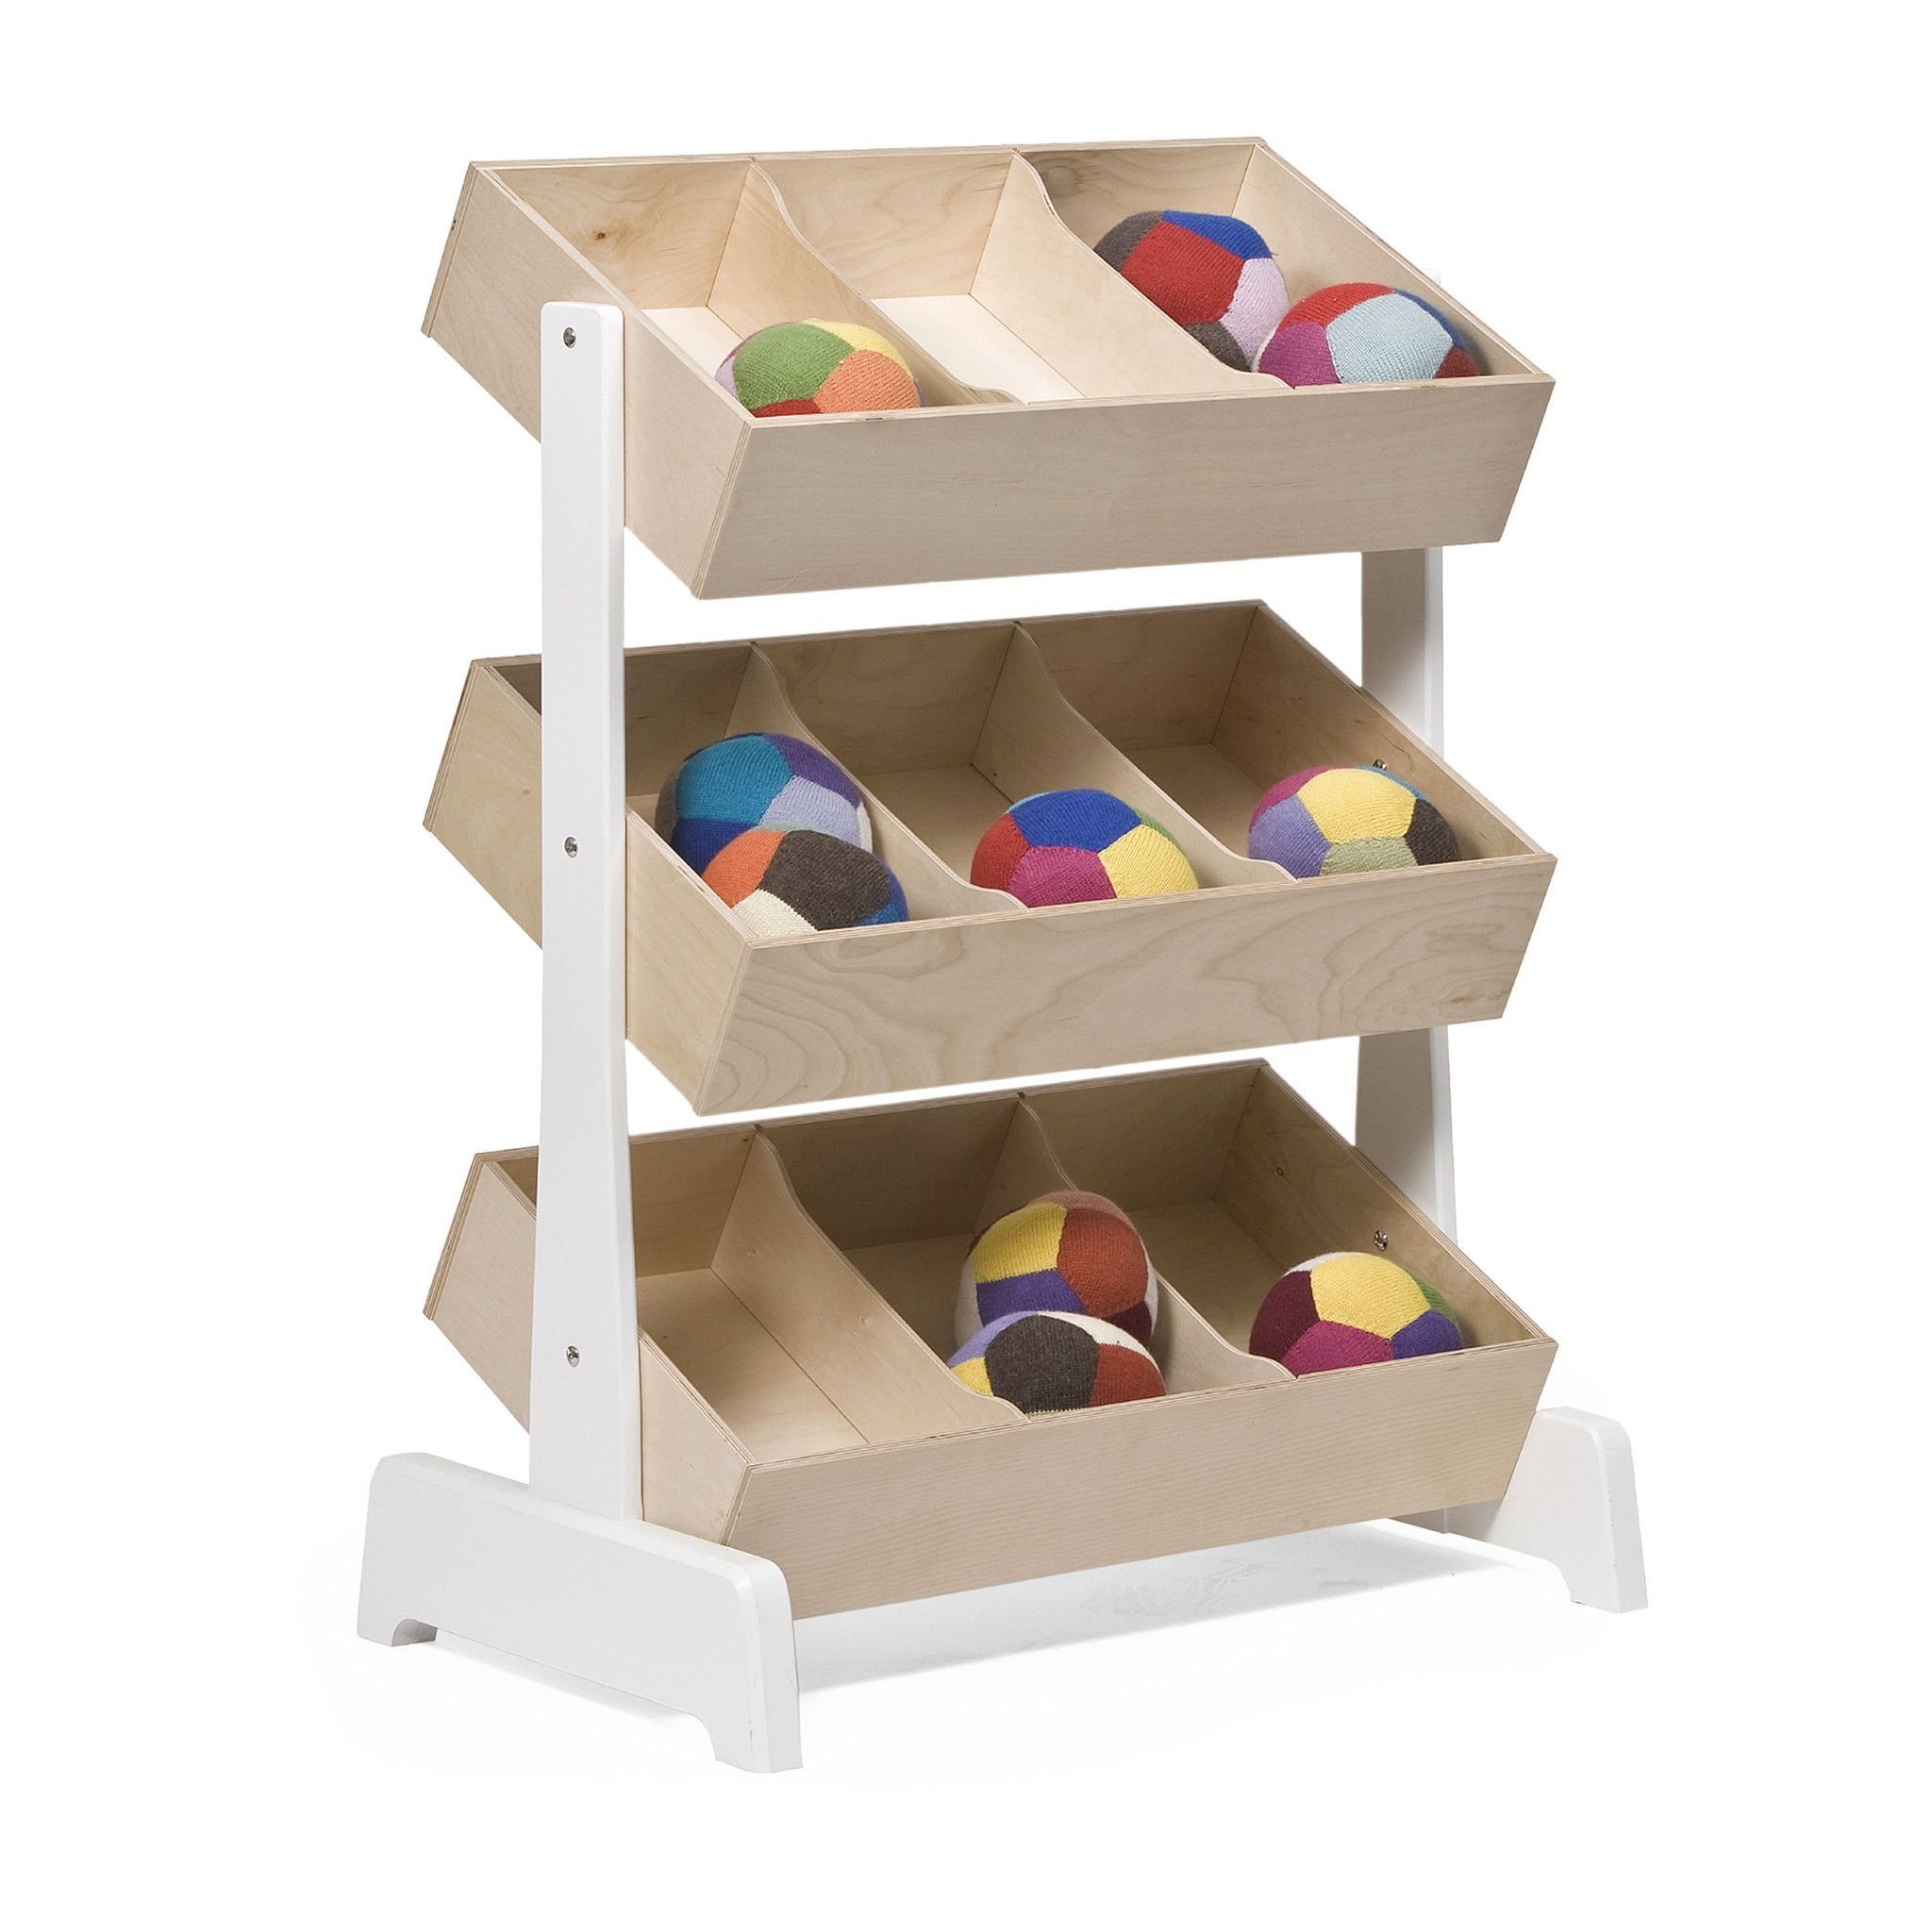 Gray Playrooms Children S Storage Bins Shelves Children S Storage Bins Oeuf Toy Storage Oeuf Toy Storage Toy Storage houzz-03 Kids Storage Bins